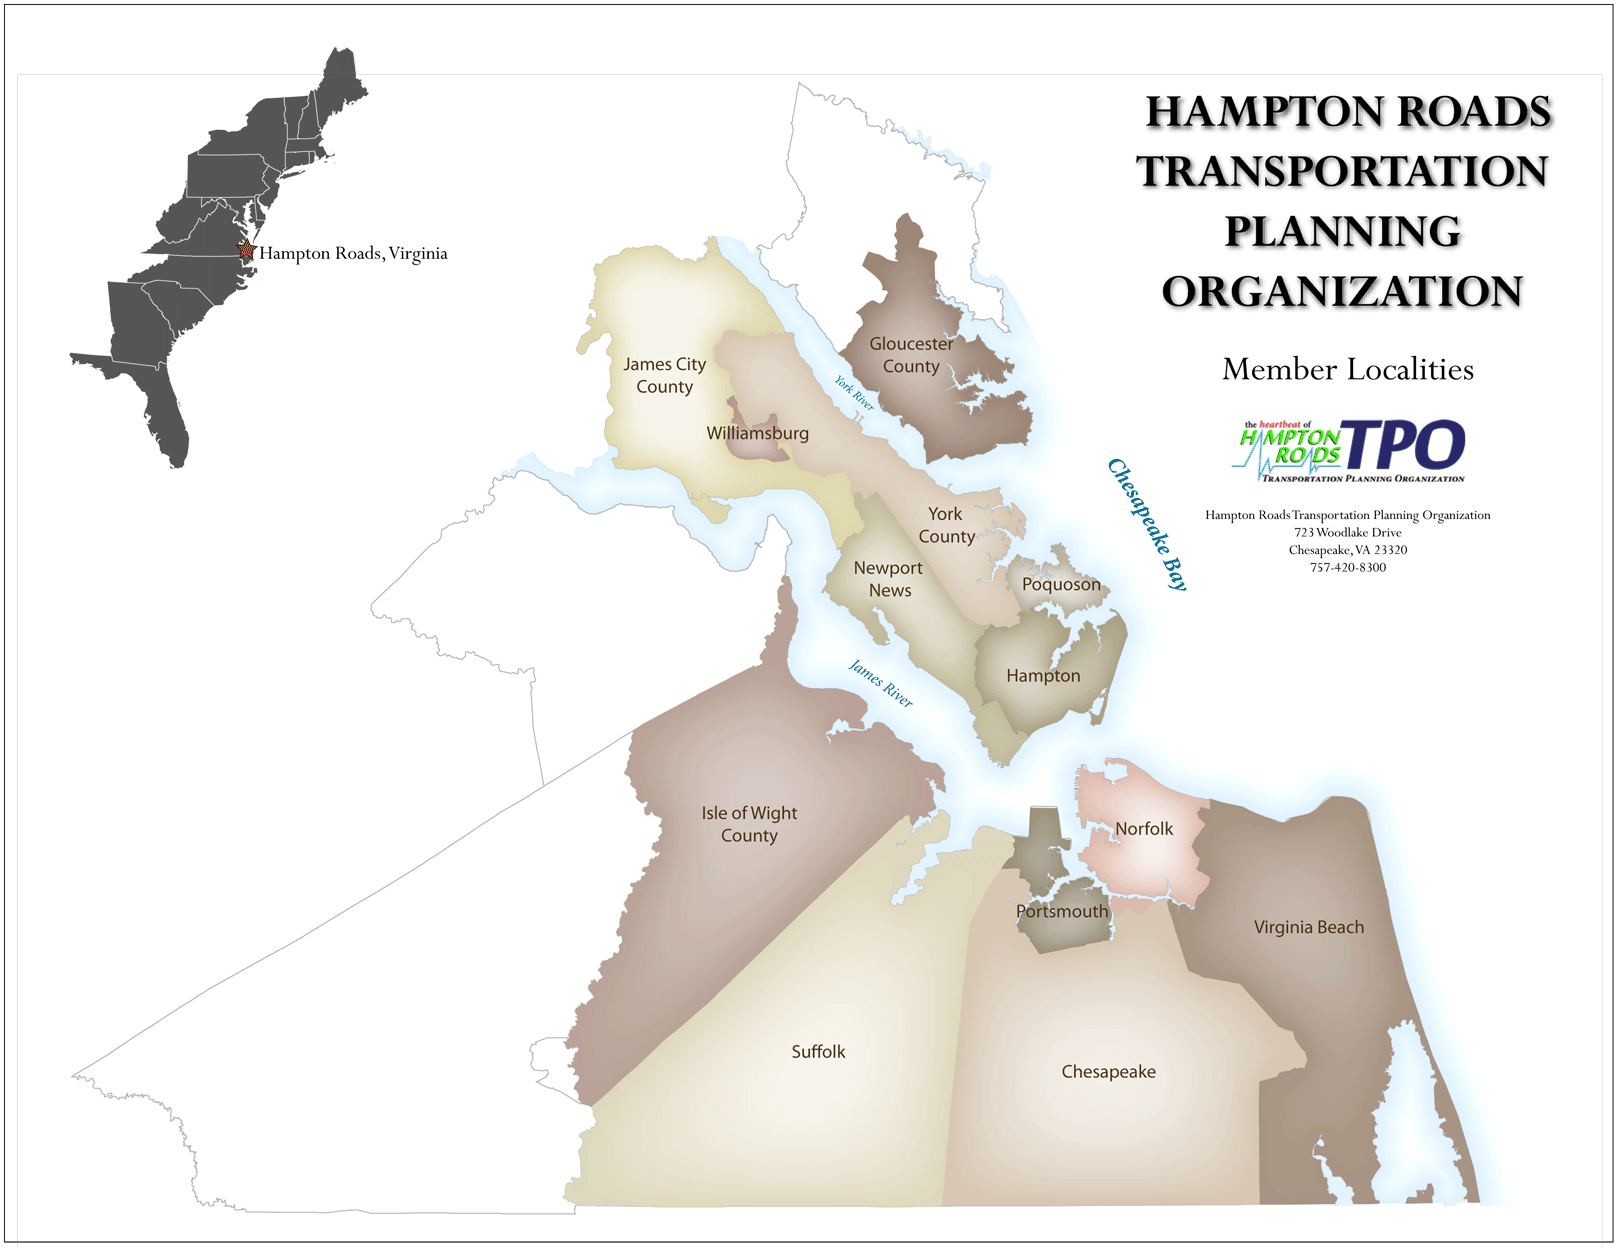 HRTPO Jurisdictions